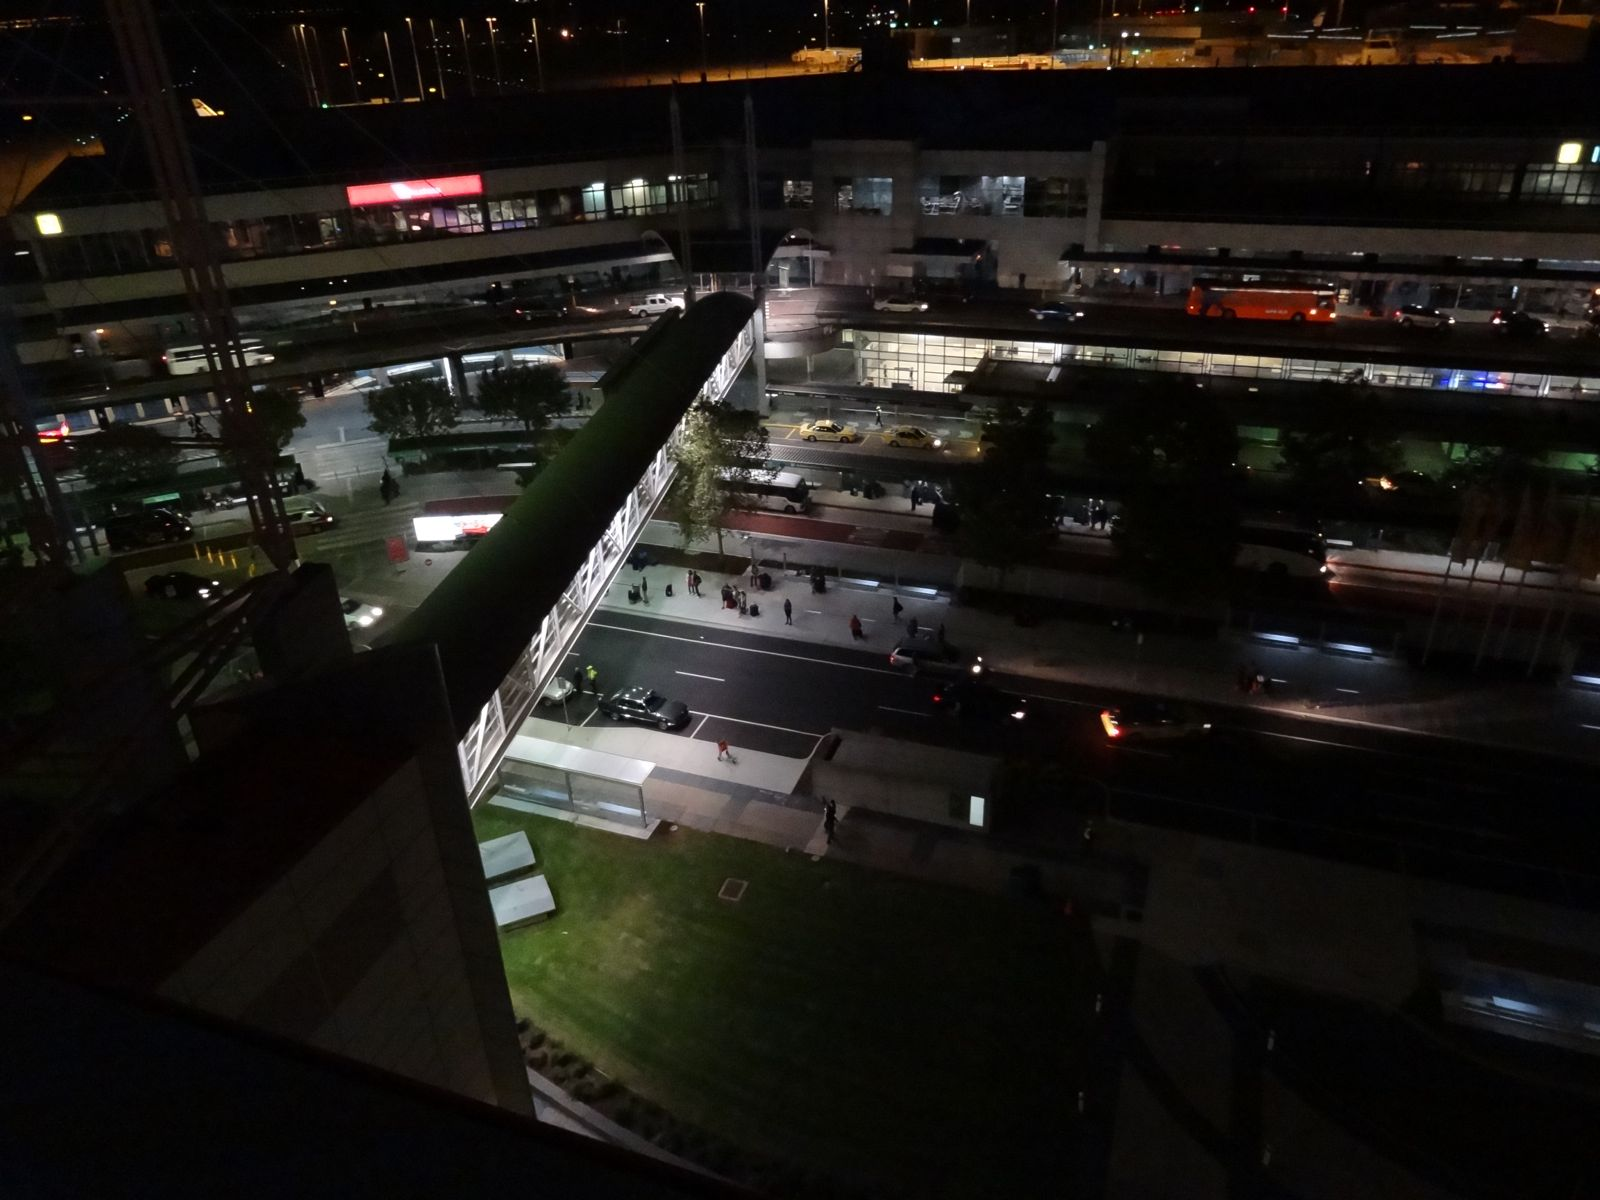 From my room at the Parkroyal at Melbourne airport